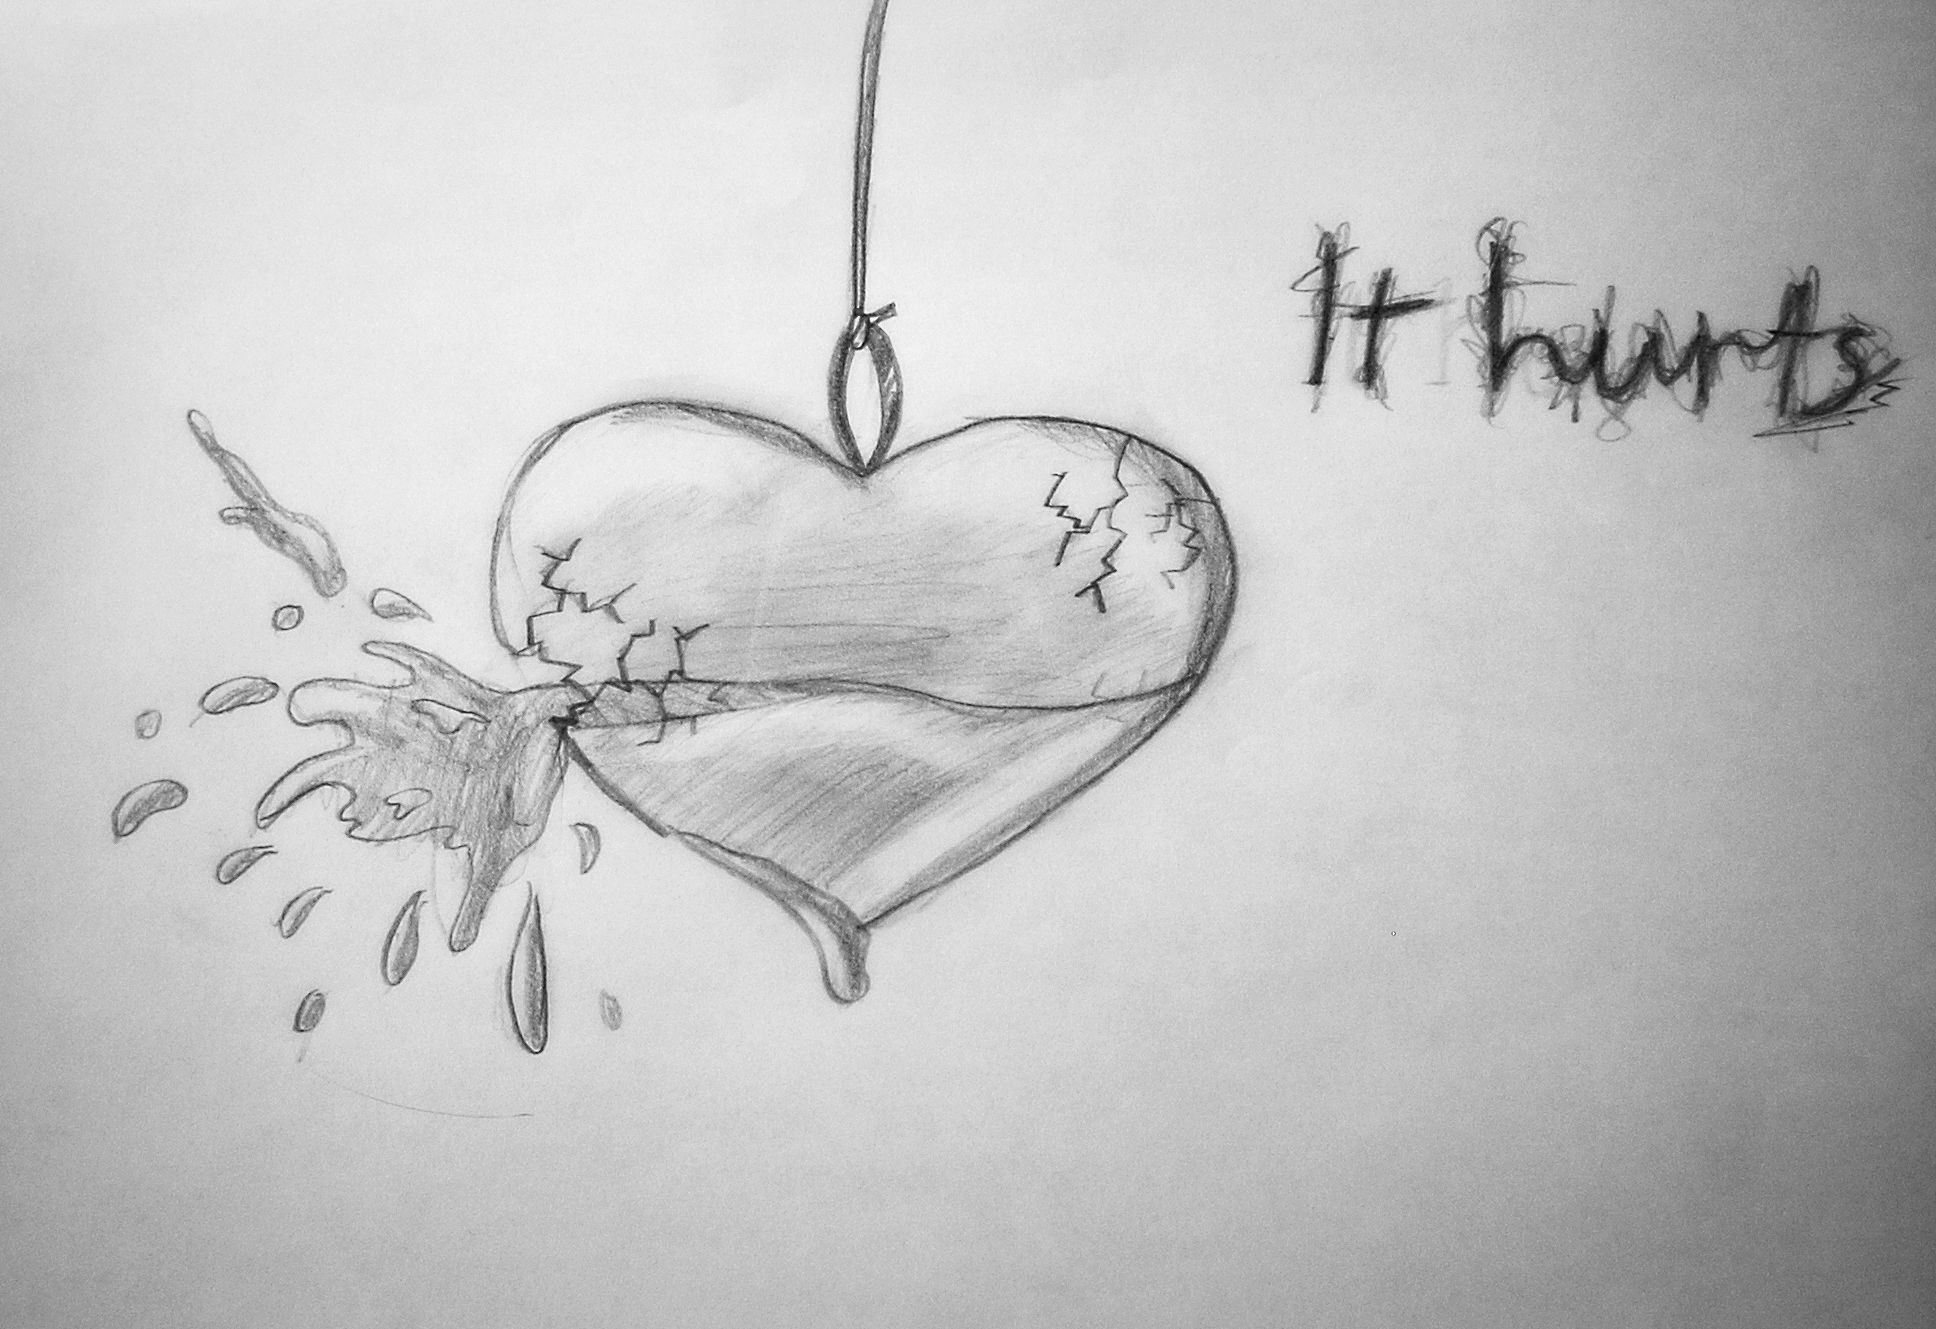 broken girl drawing - Google Search | Broken heart ...